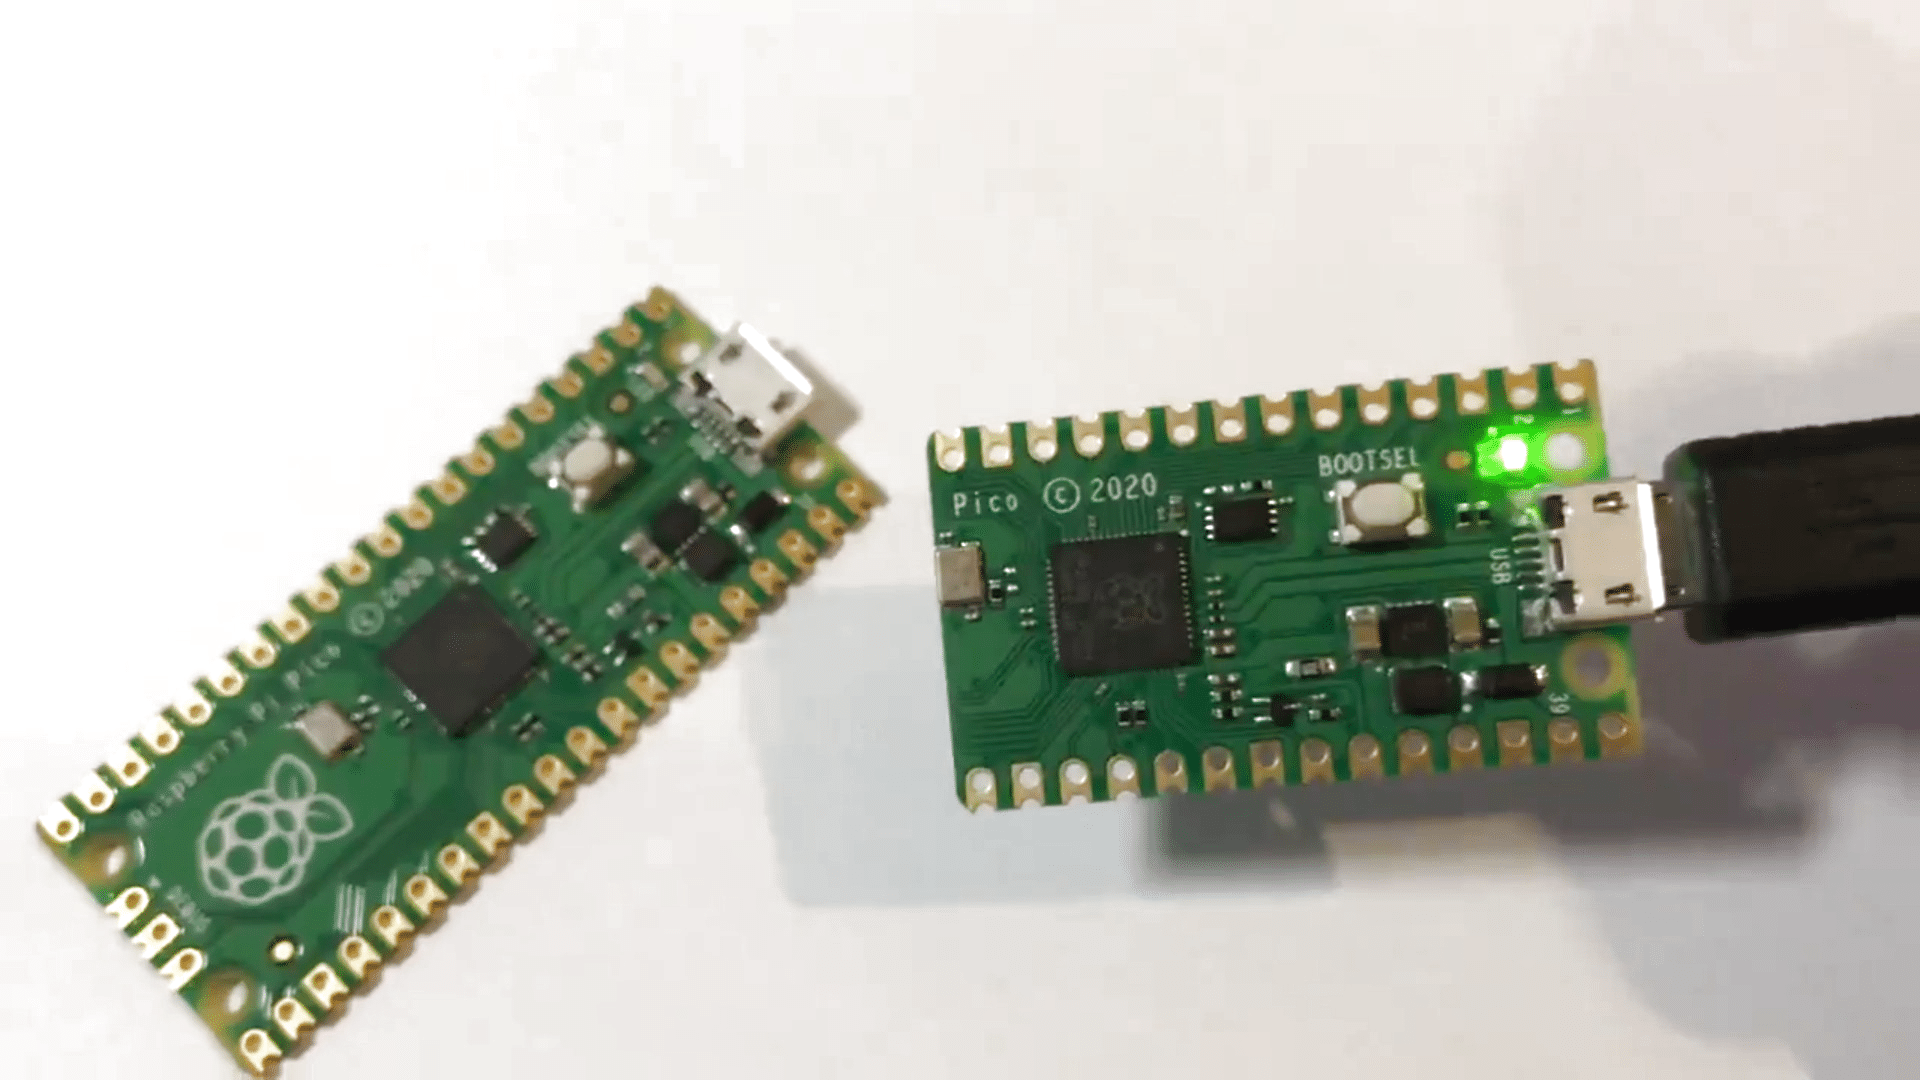 Slimming The Raspberry Pi Pico With A Hacksaw